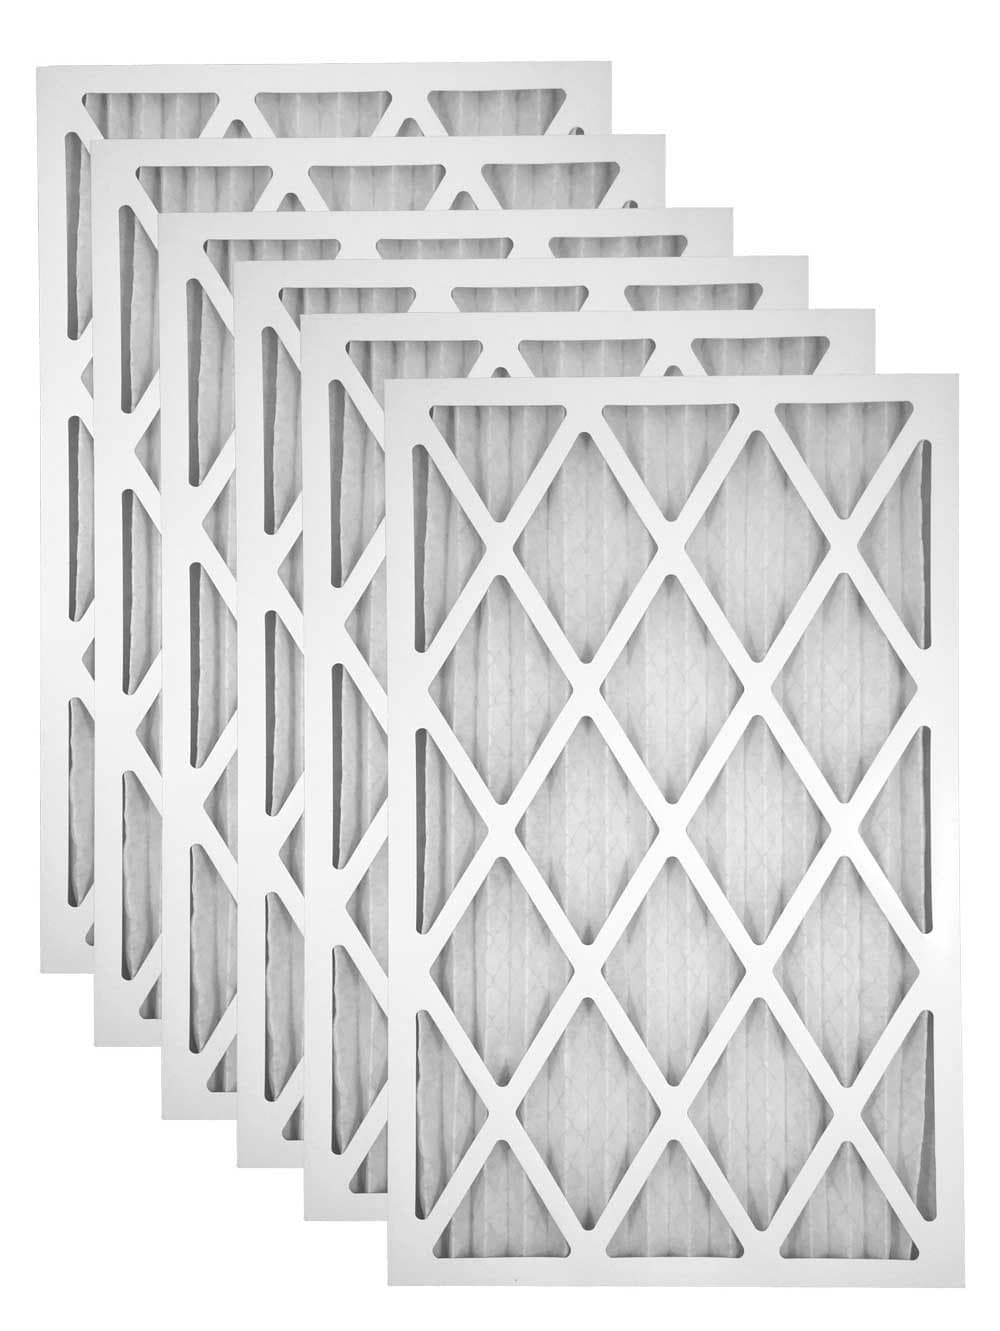 17x22x1 Merv 13 Pleated AC Furnace Filter - Case of 6